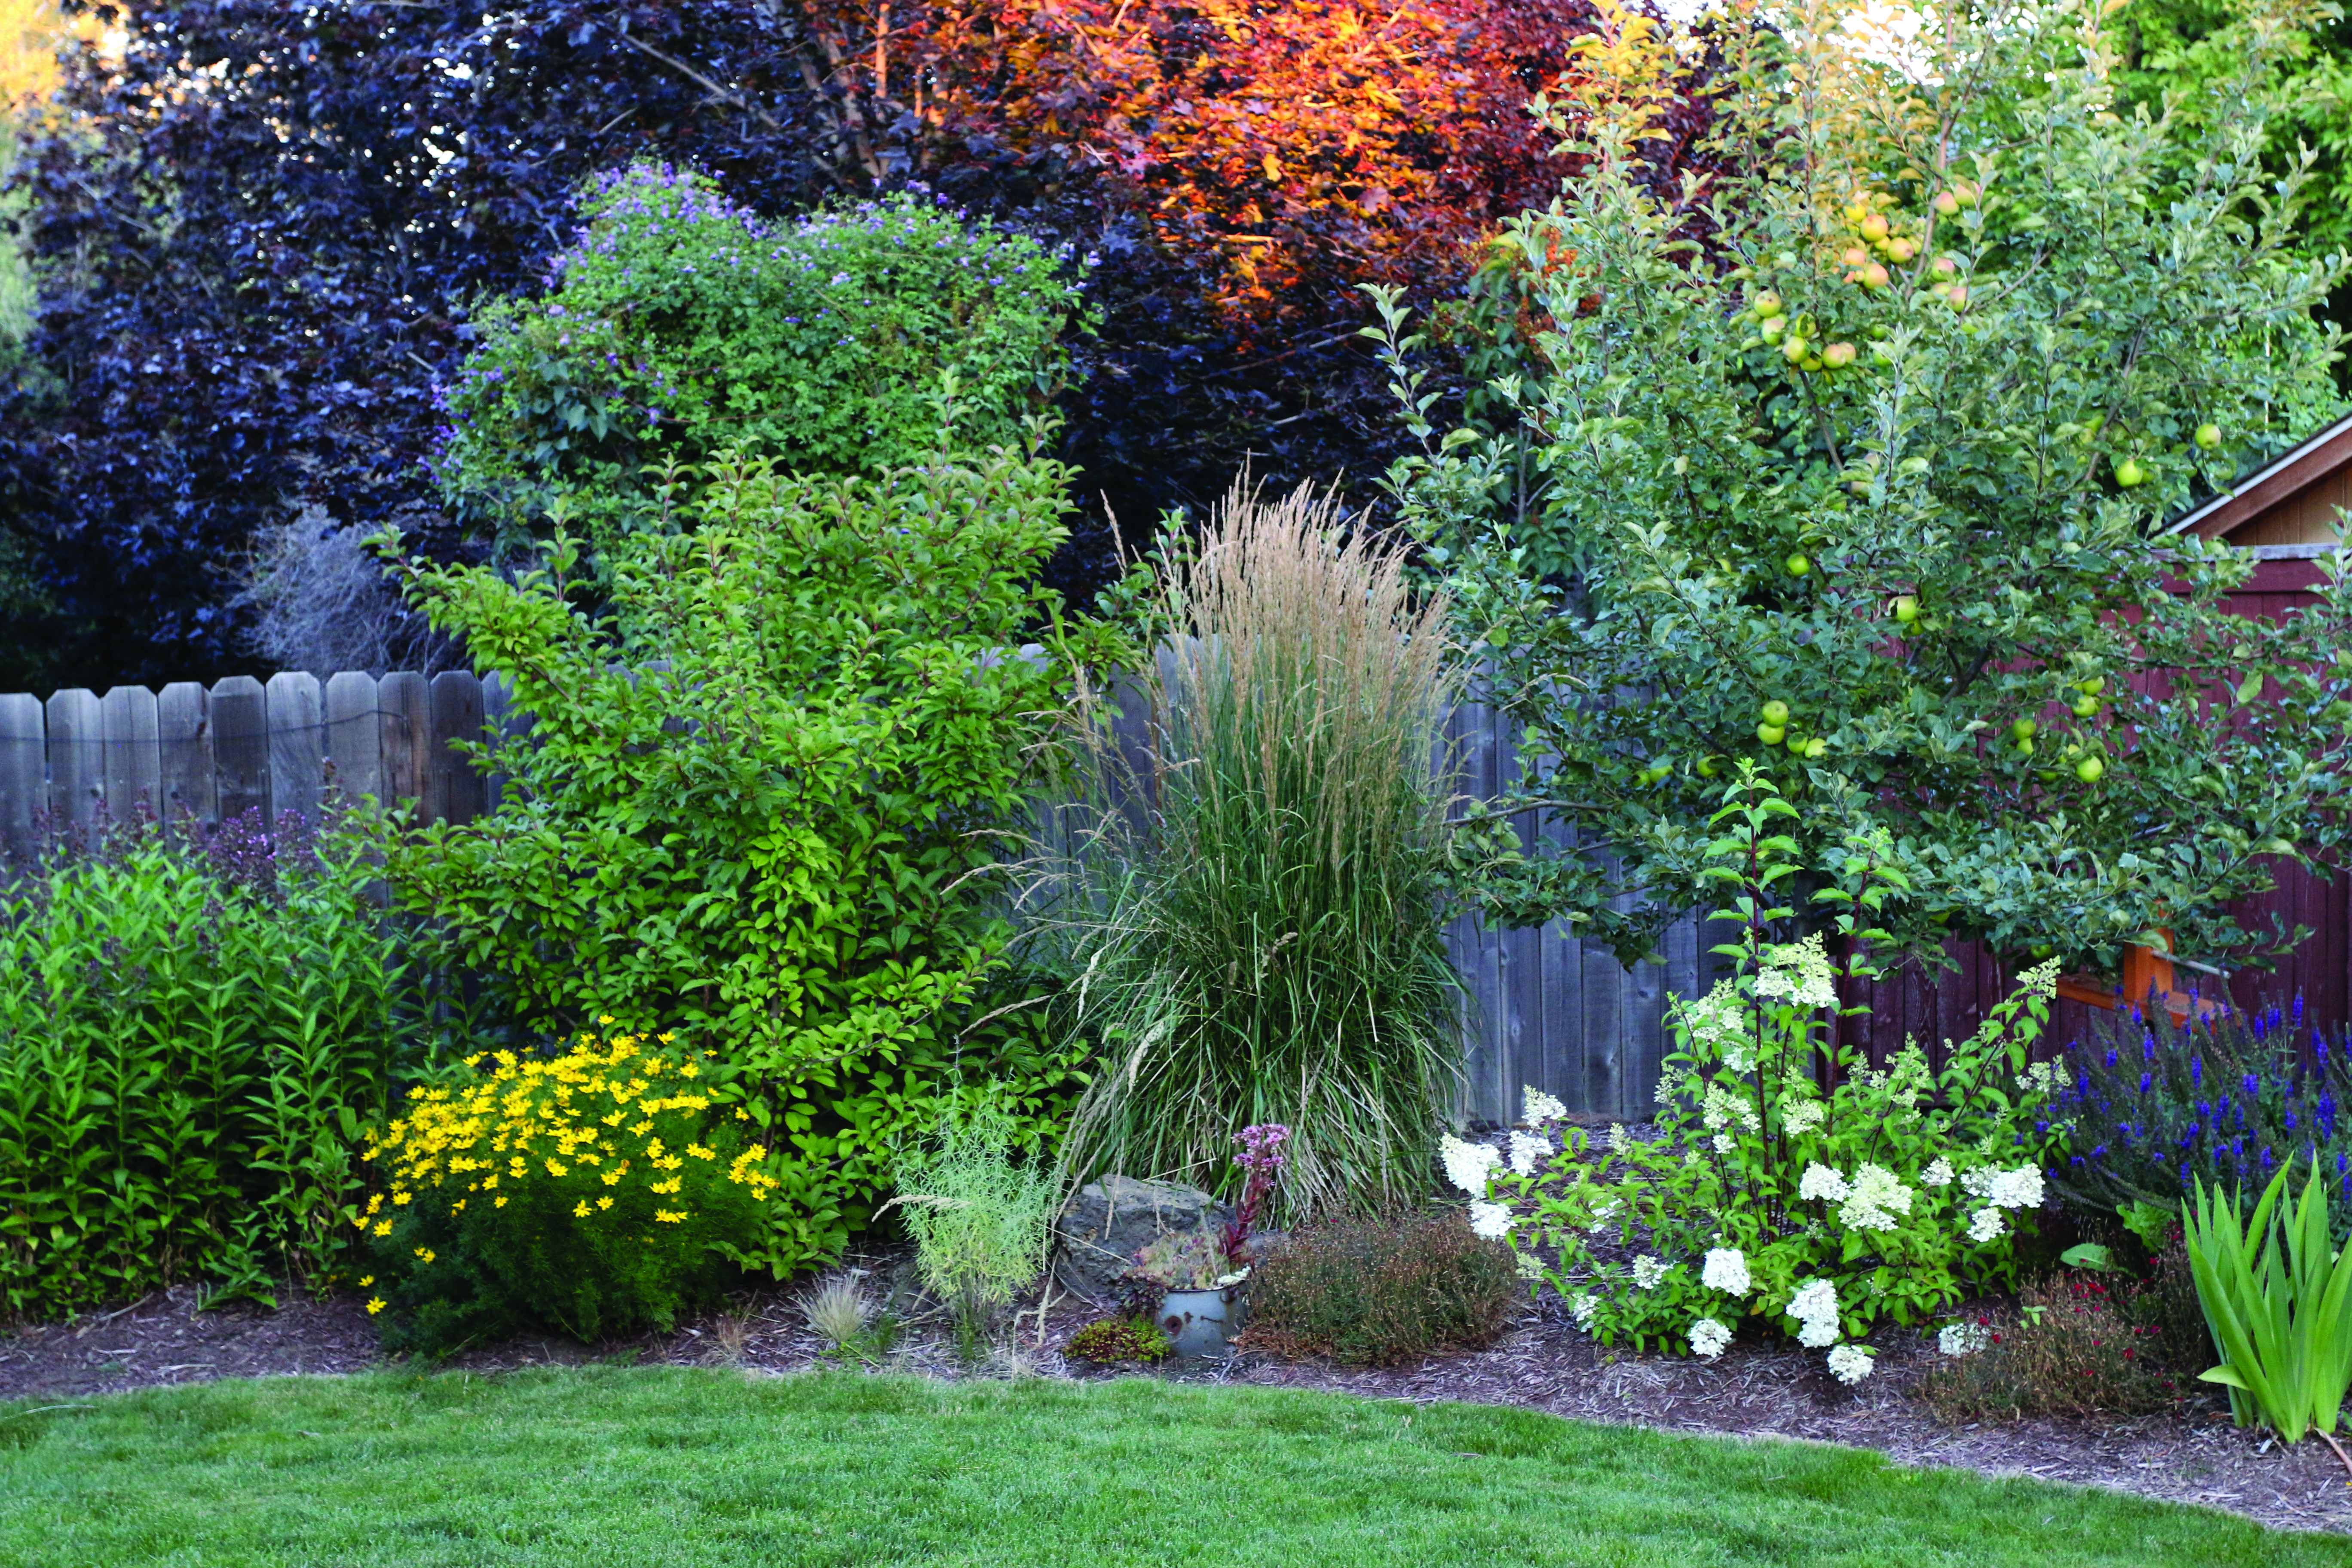 Garden scene with grasses, flowers, shrubs